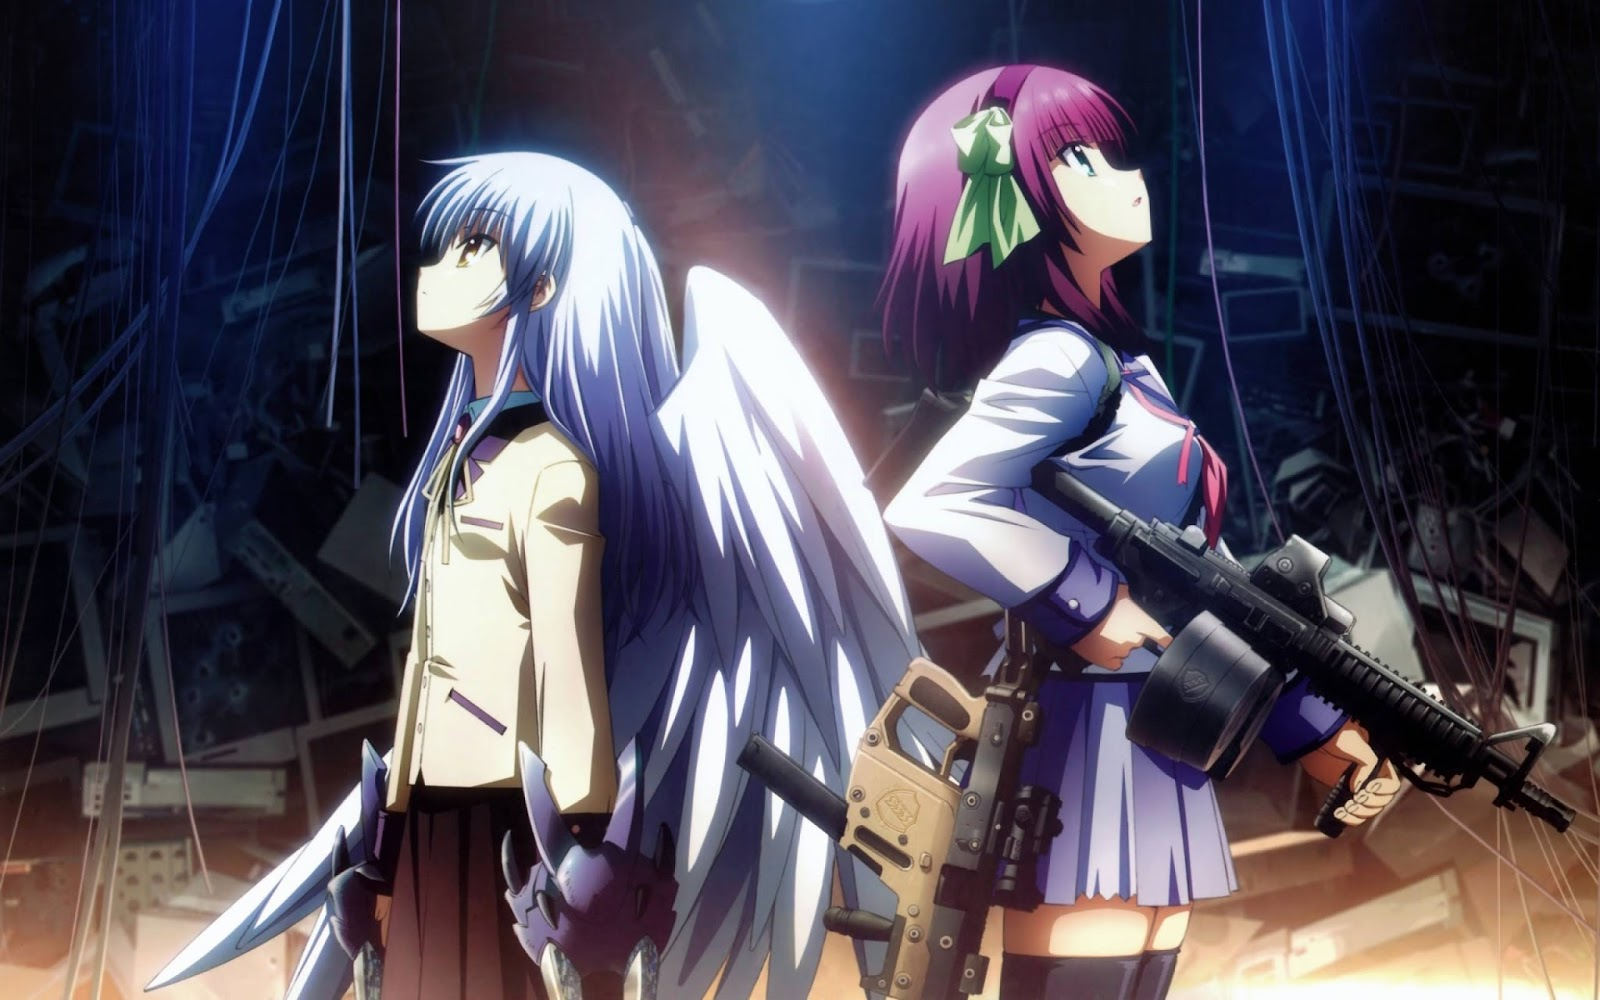 Download OST Opening Ending Insert Song Anime Angel Beats Full Version